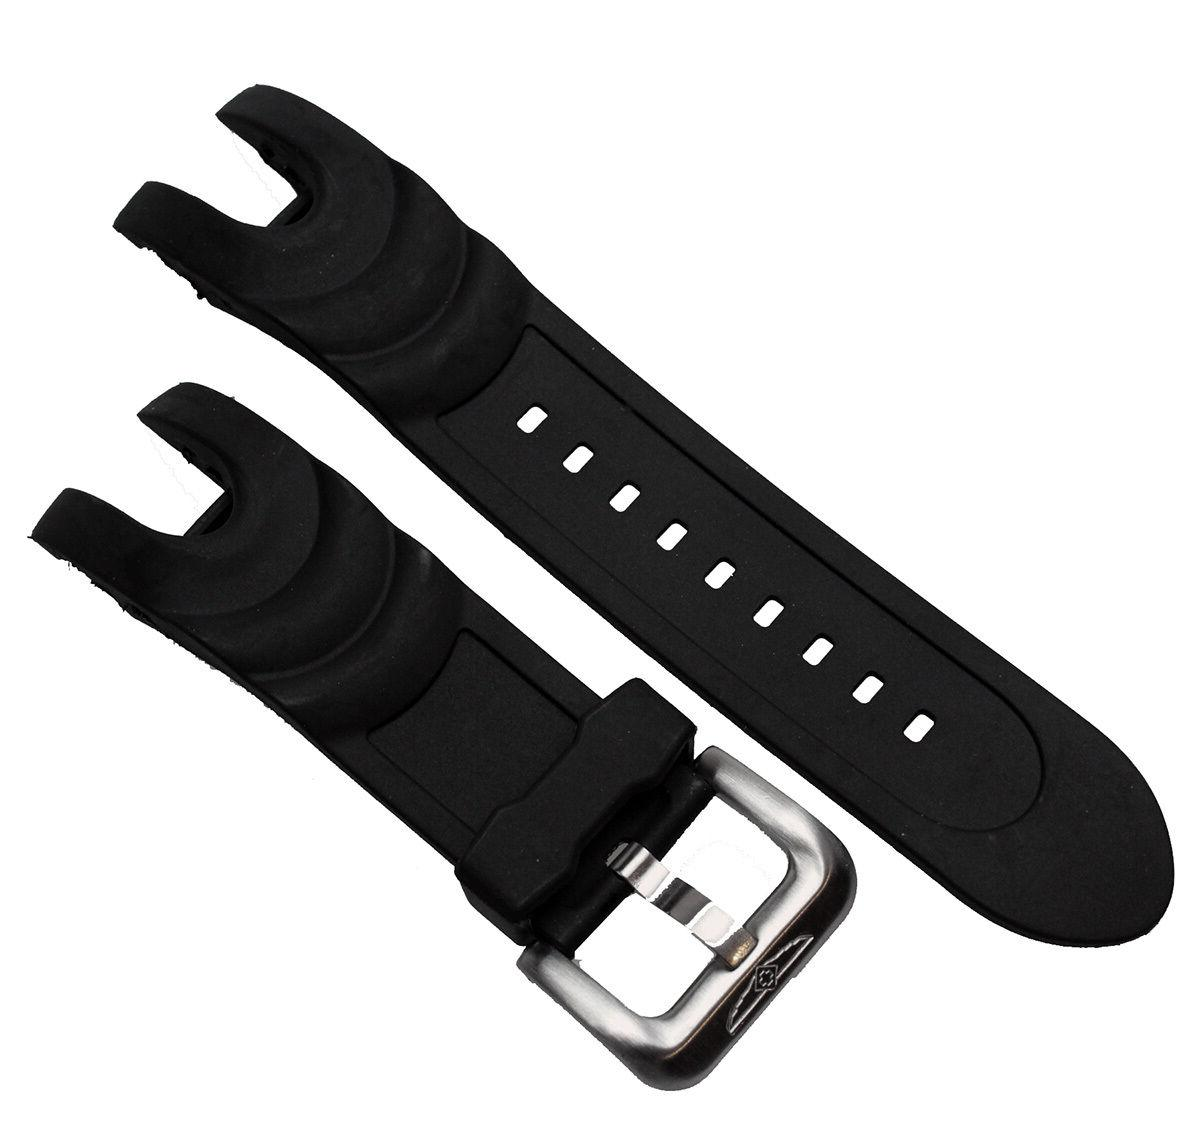 Black Rubber Replacement Watch Strap Band For Invicta Reserv